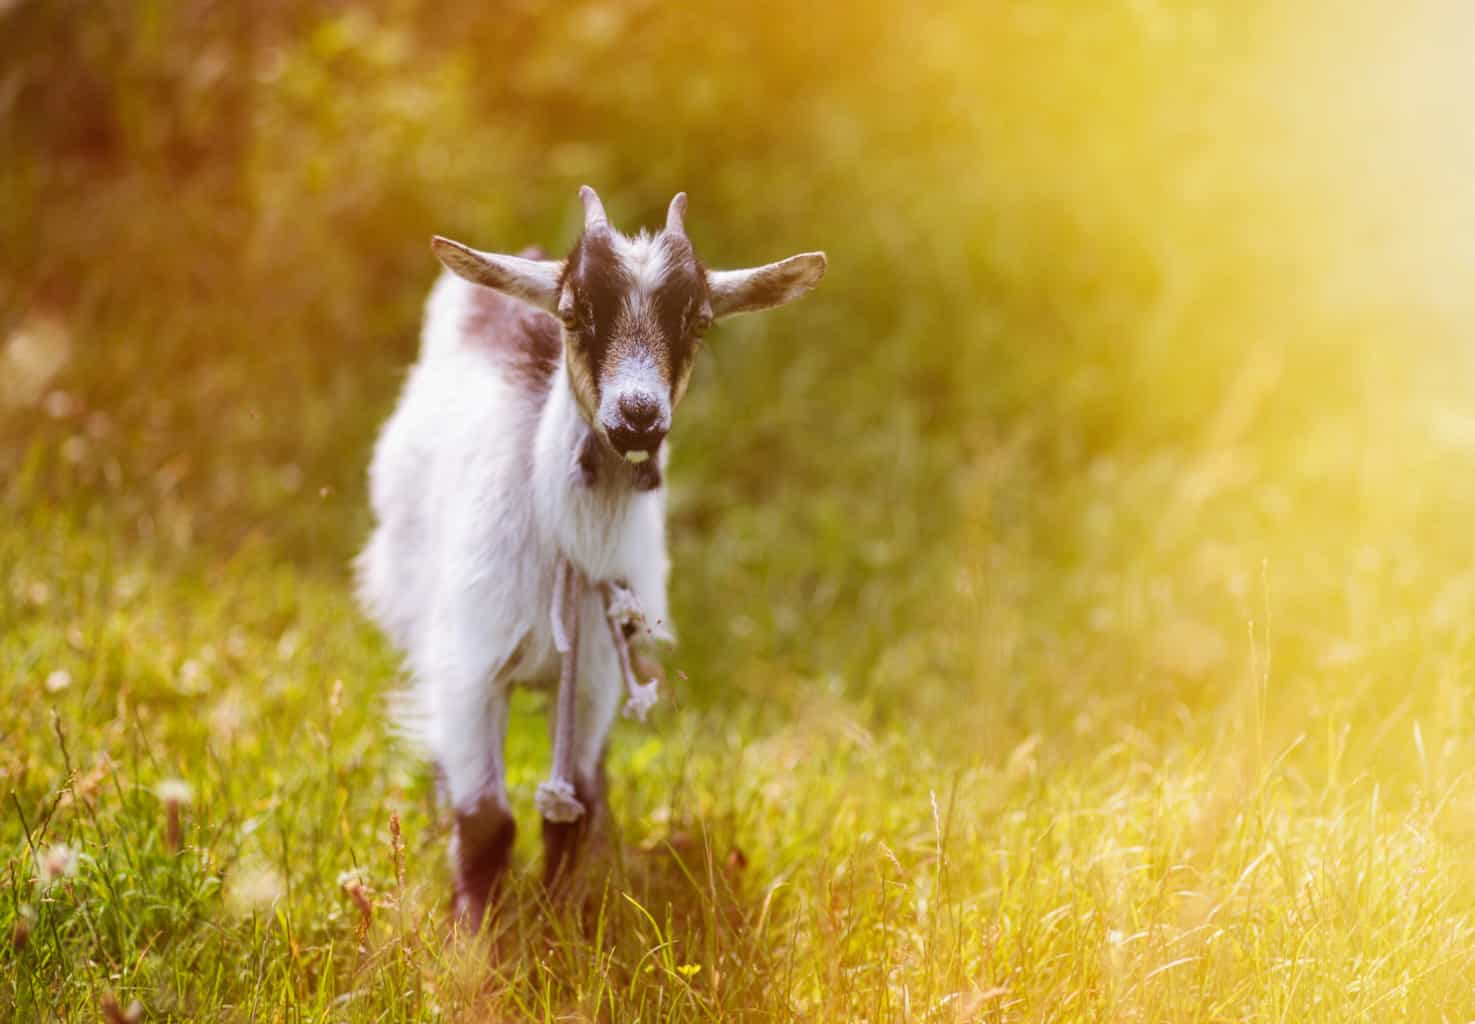 Goat Pneumonia is a leading killer in goats. Know the symptoms and the treatment options. Goat standing in green grass and sunlight